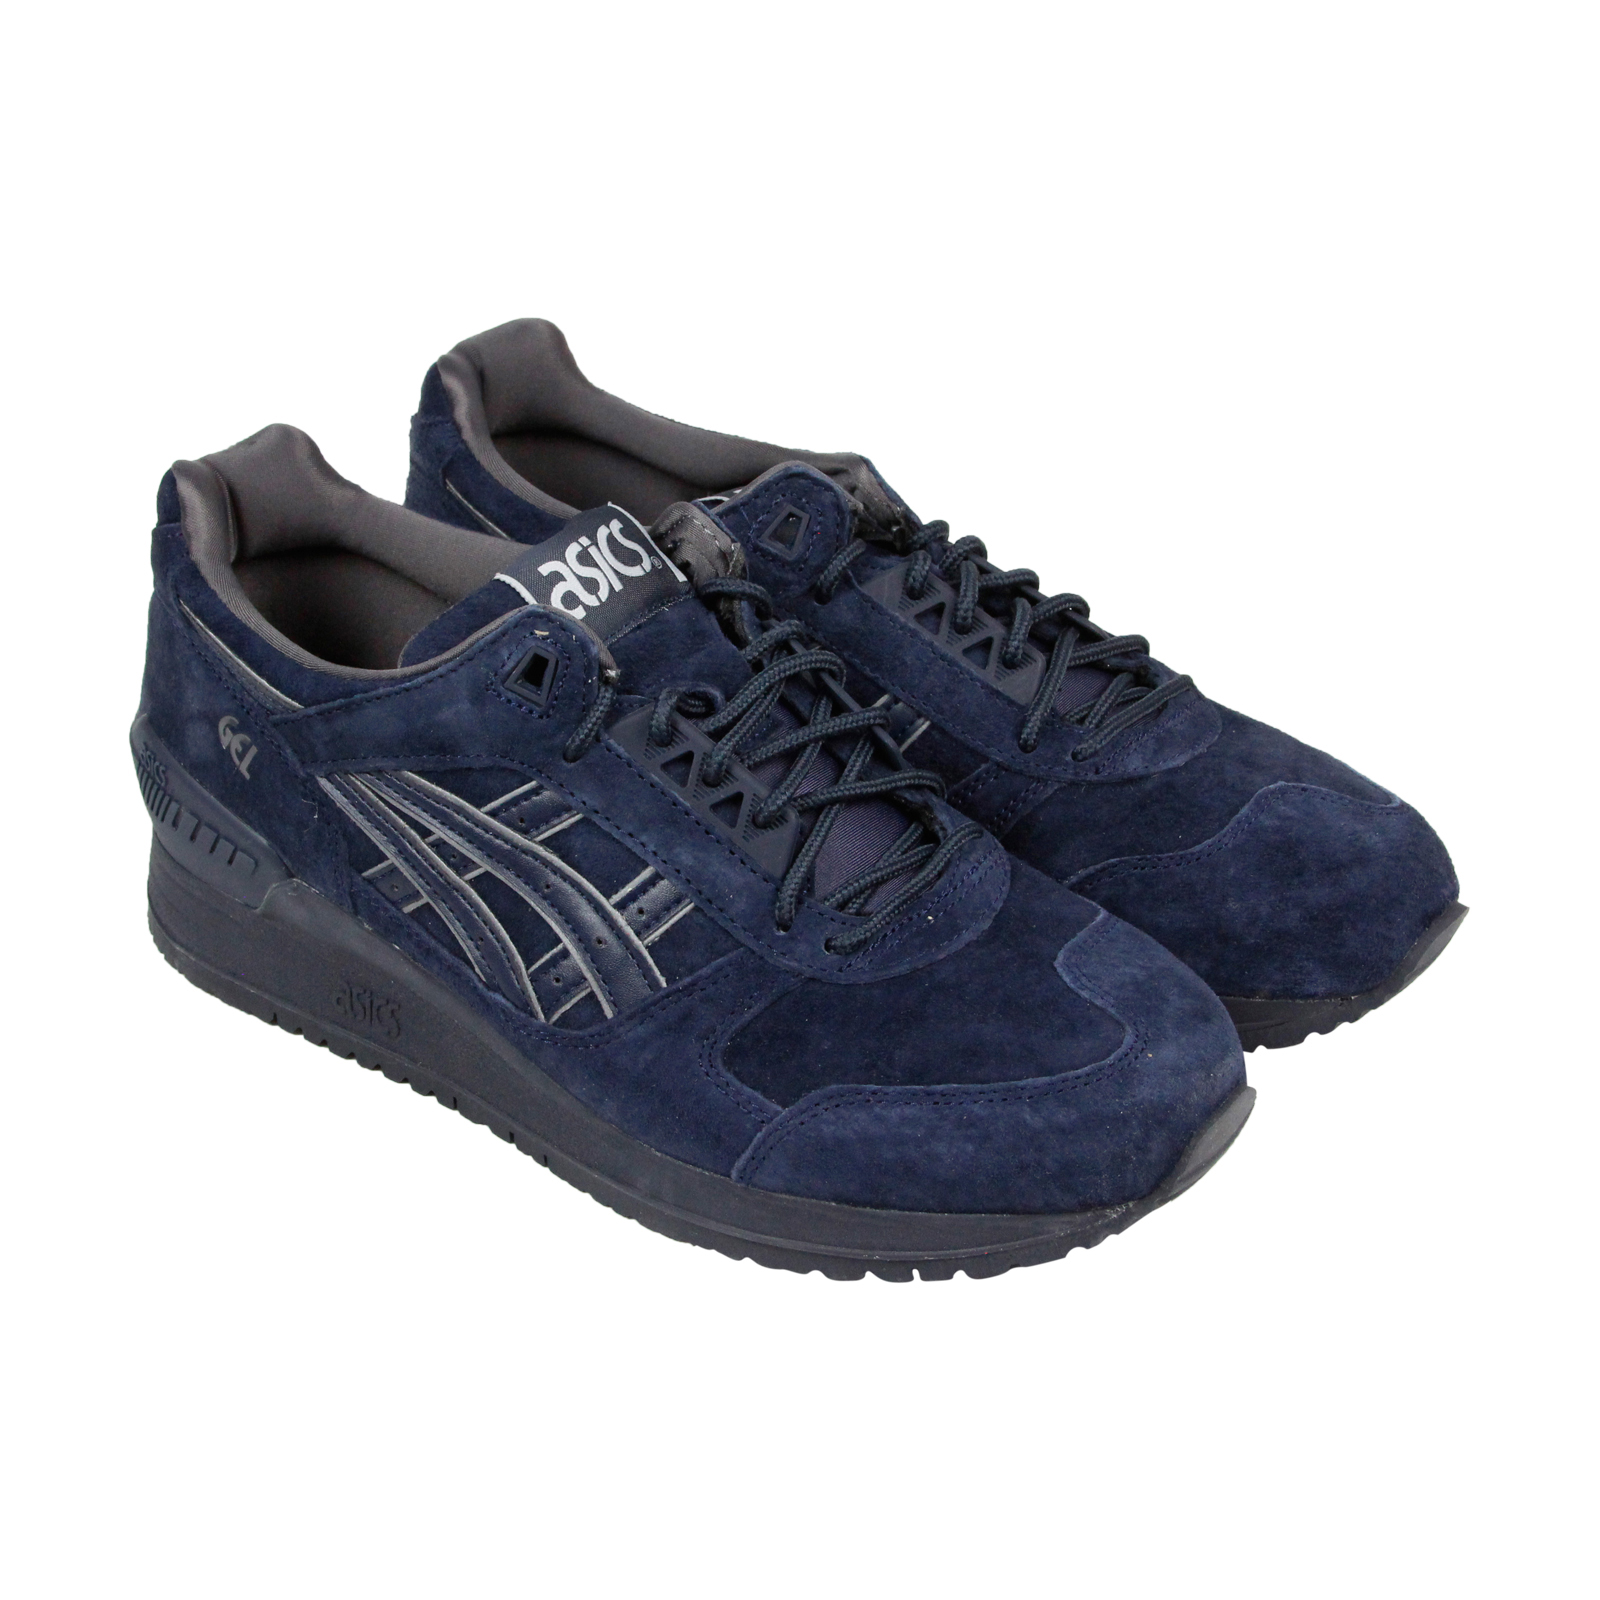 096f820abf0a ASICS GEL RESPECTOR Mens Blue Suede Athletic Lace Up Running Shoes ...